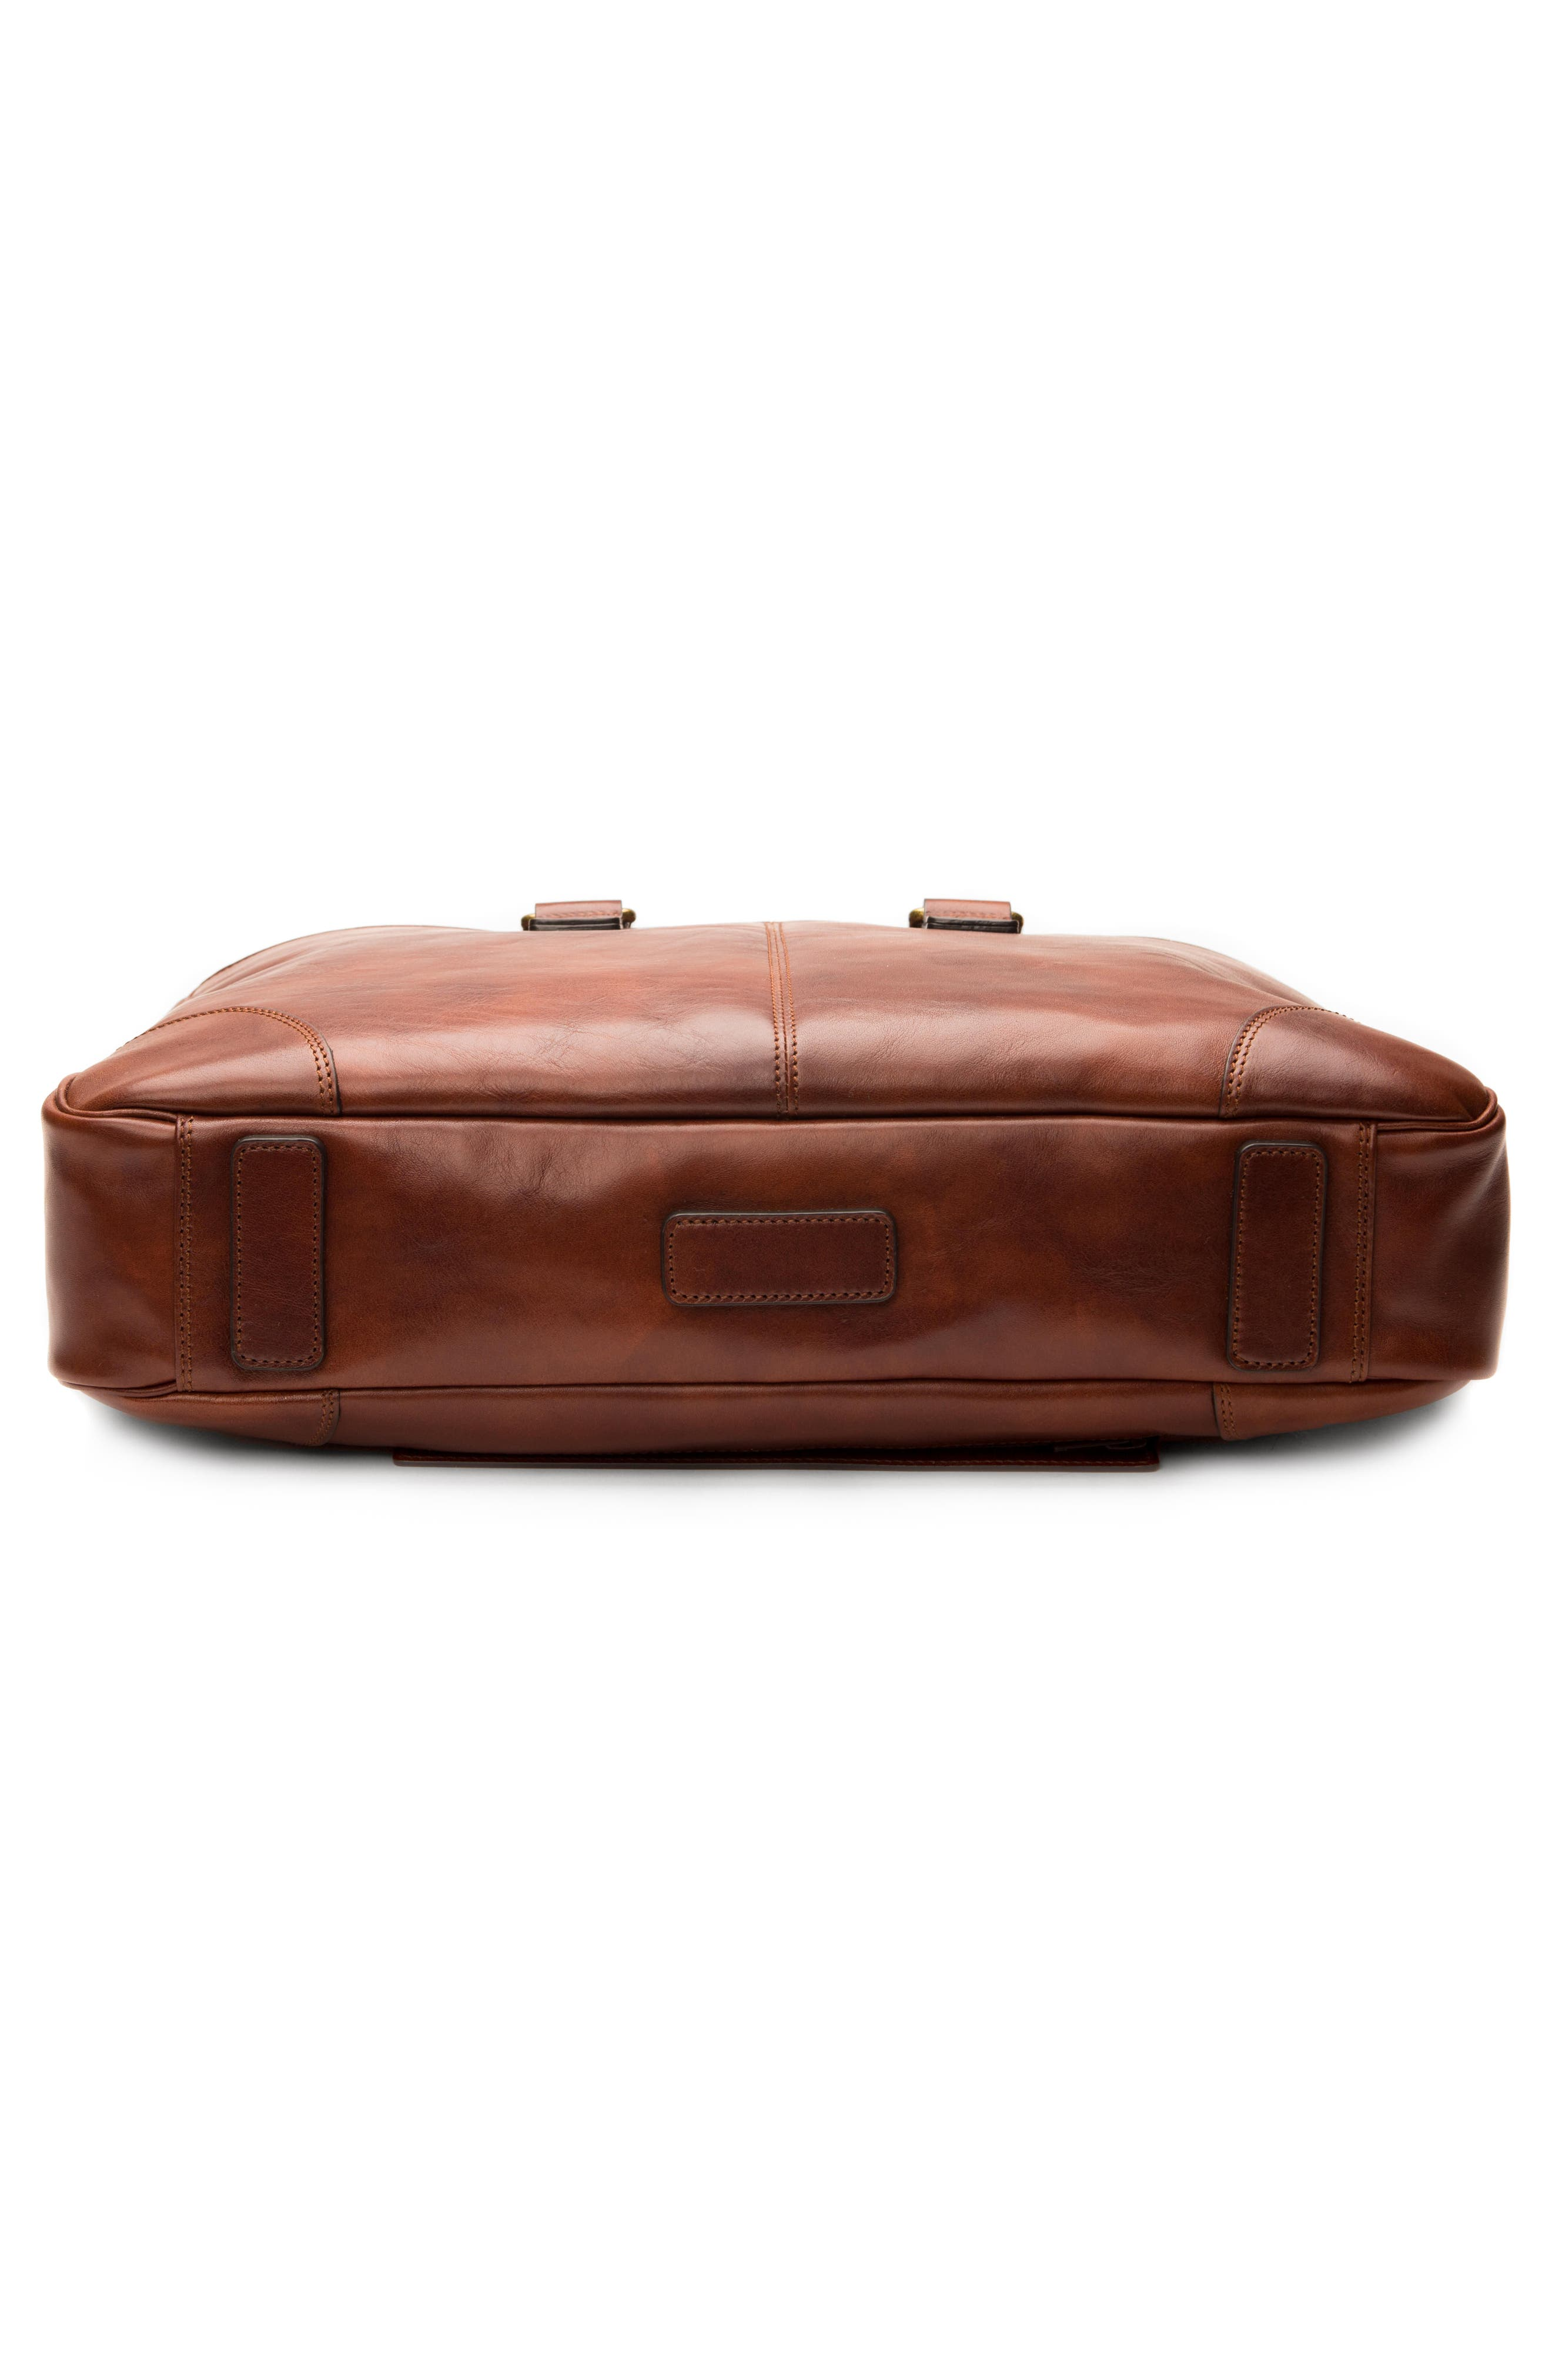 Leather Briefcase,                             Alternate thumbnail 5, color,                             200